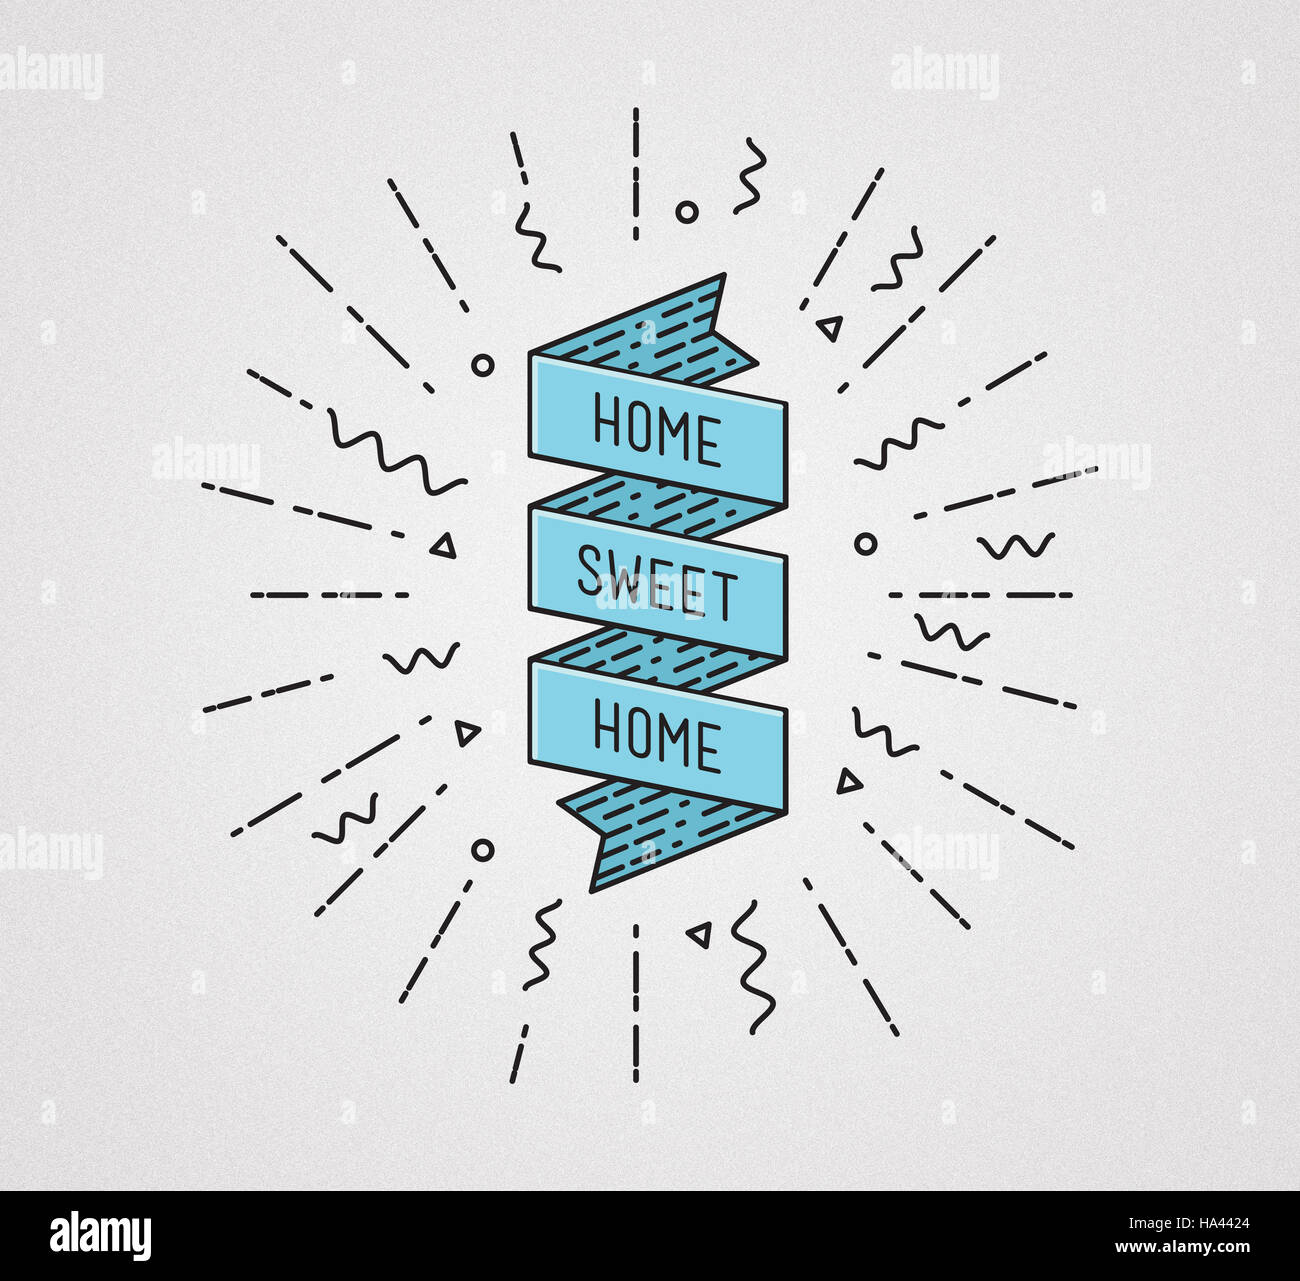 Text Type Icons Stock Photos & Text Type Icons Stock Images - Alamy